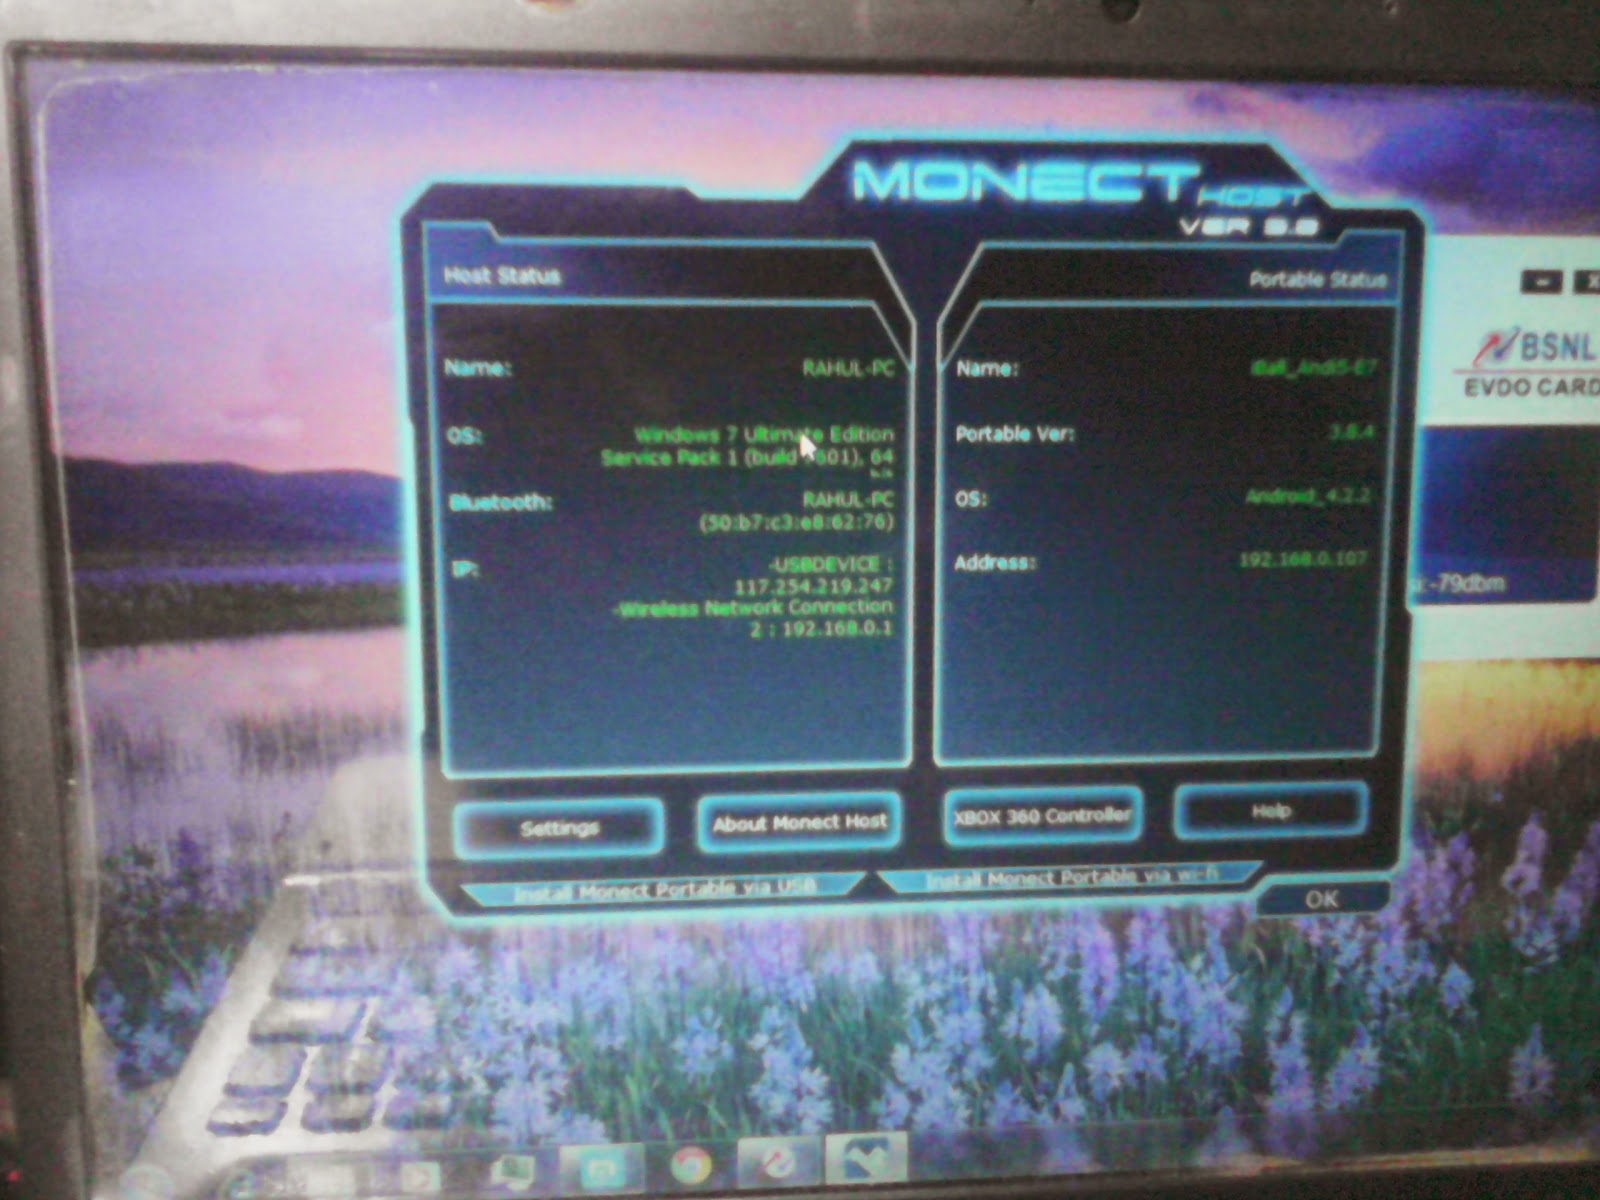 Download monect for pc | PC Remote Free Download  2019-04-21